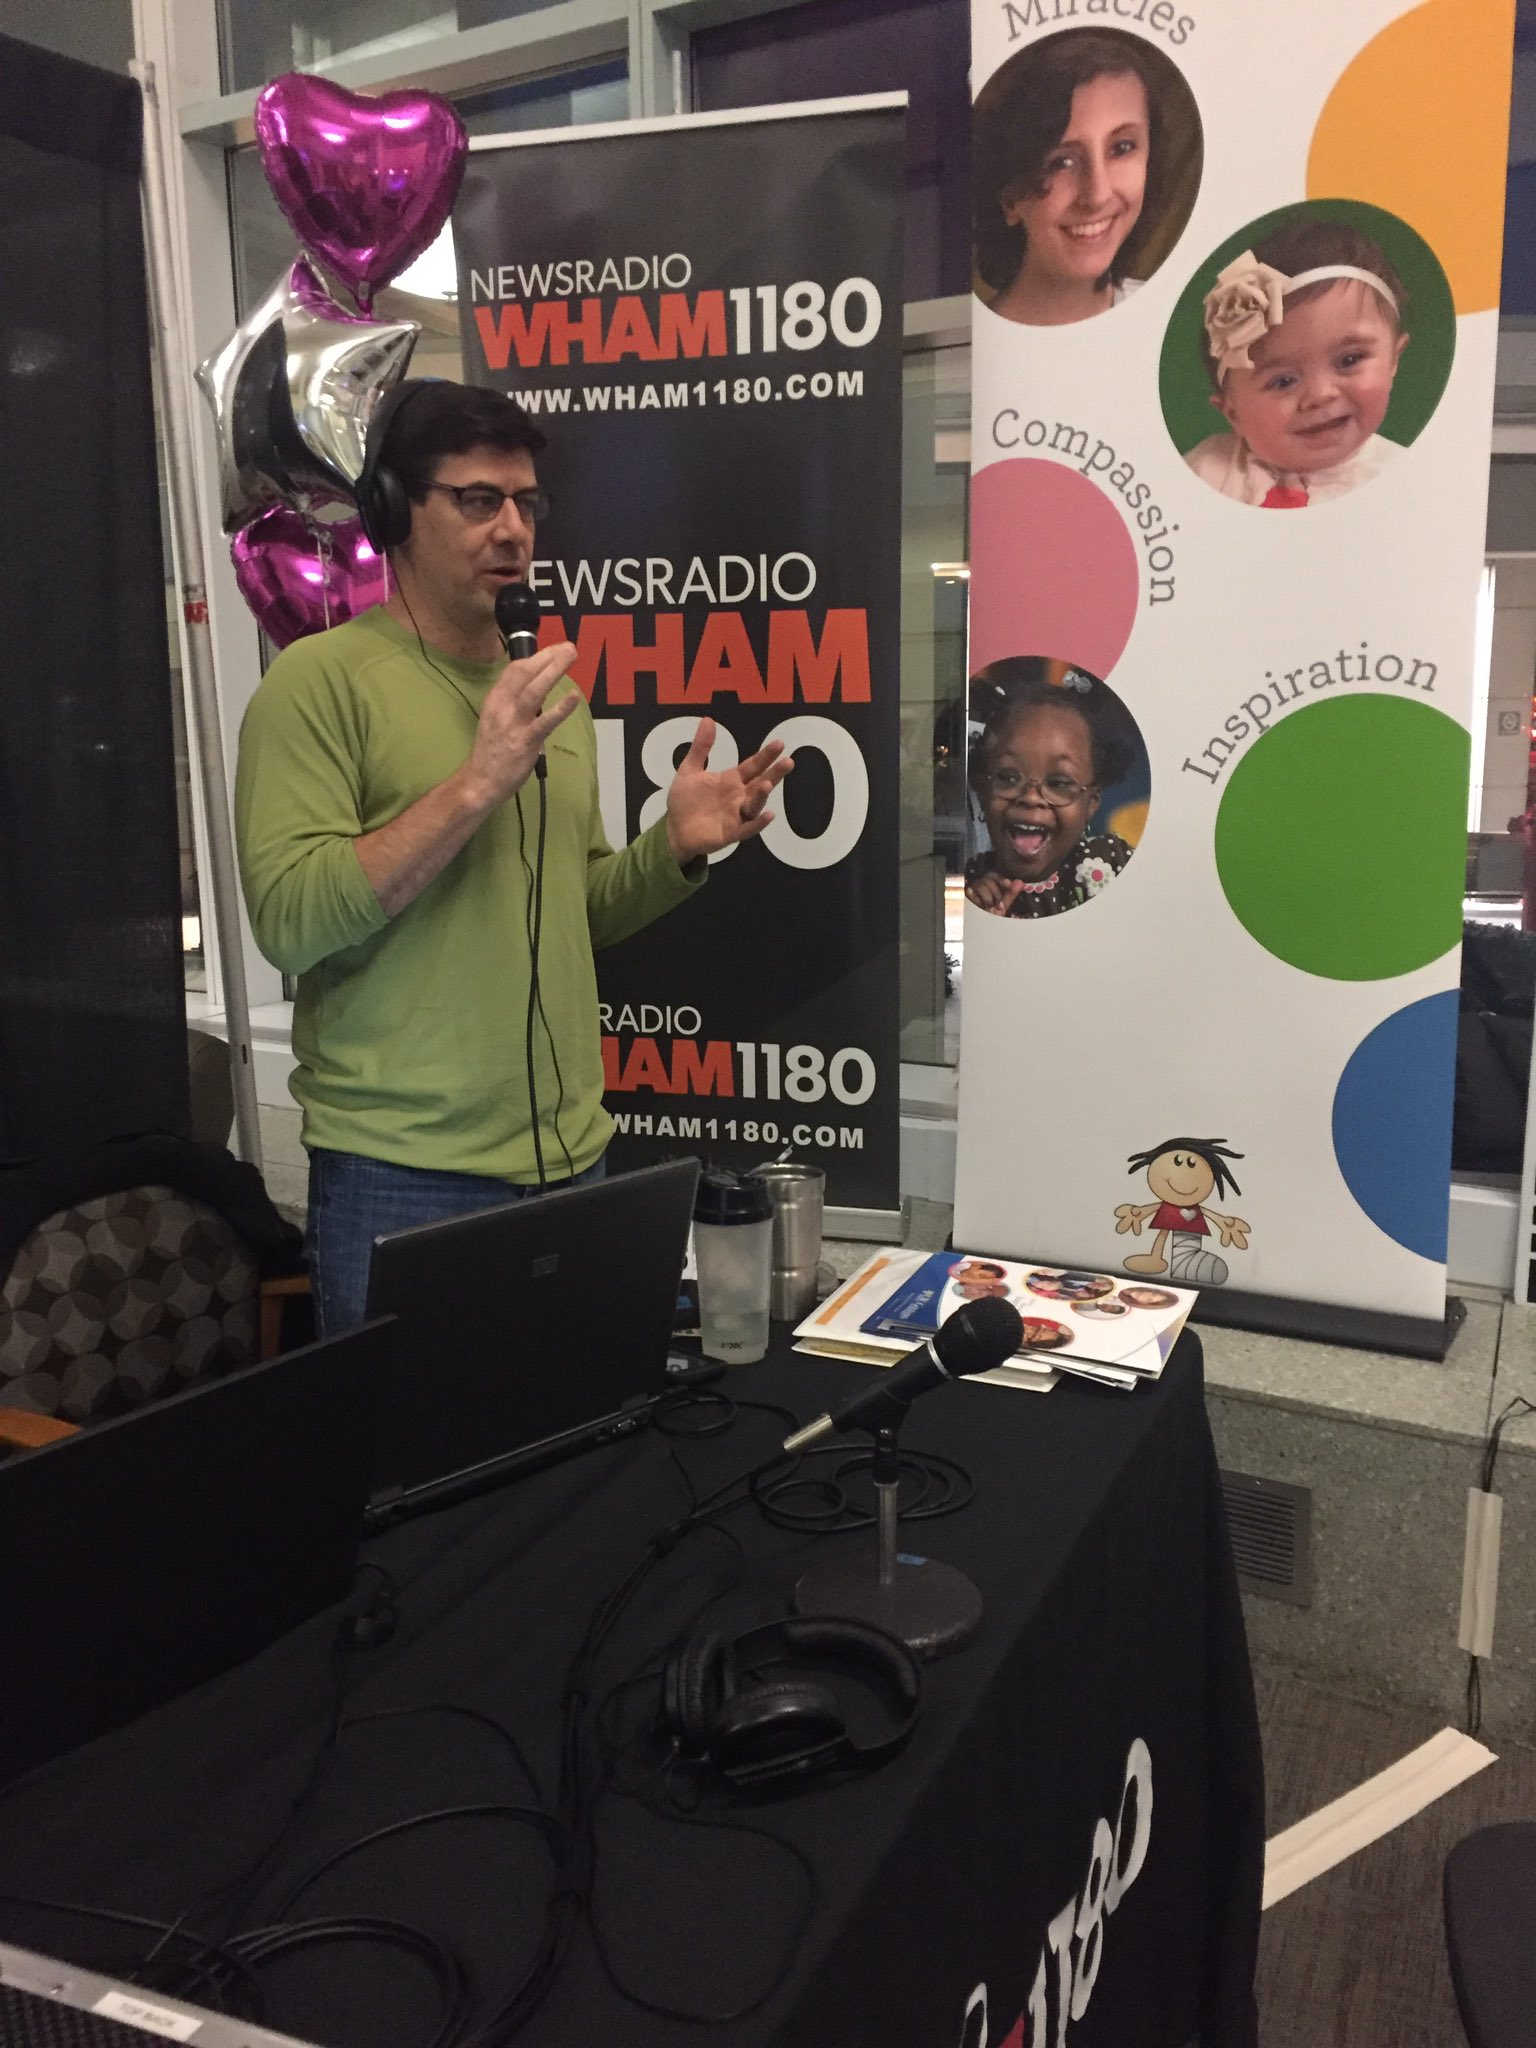 .@billmoranradio is LIVE from lobby of @URMed_GCH for #DriveForMiracles - Call 241 - 5437 to become a miracle maker! https://t.co/uNxuGEZRiD